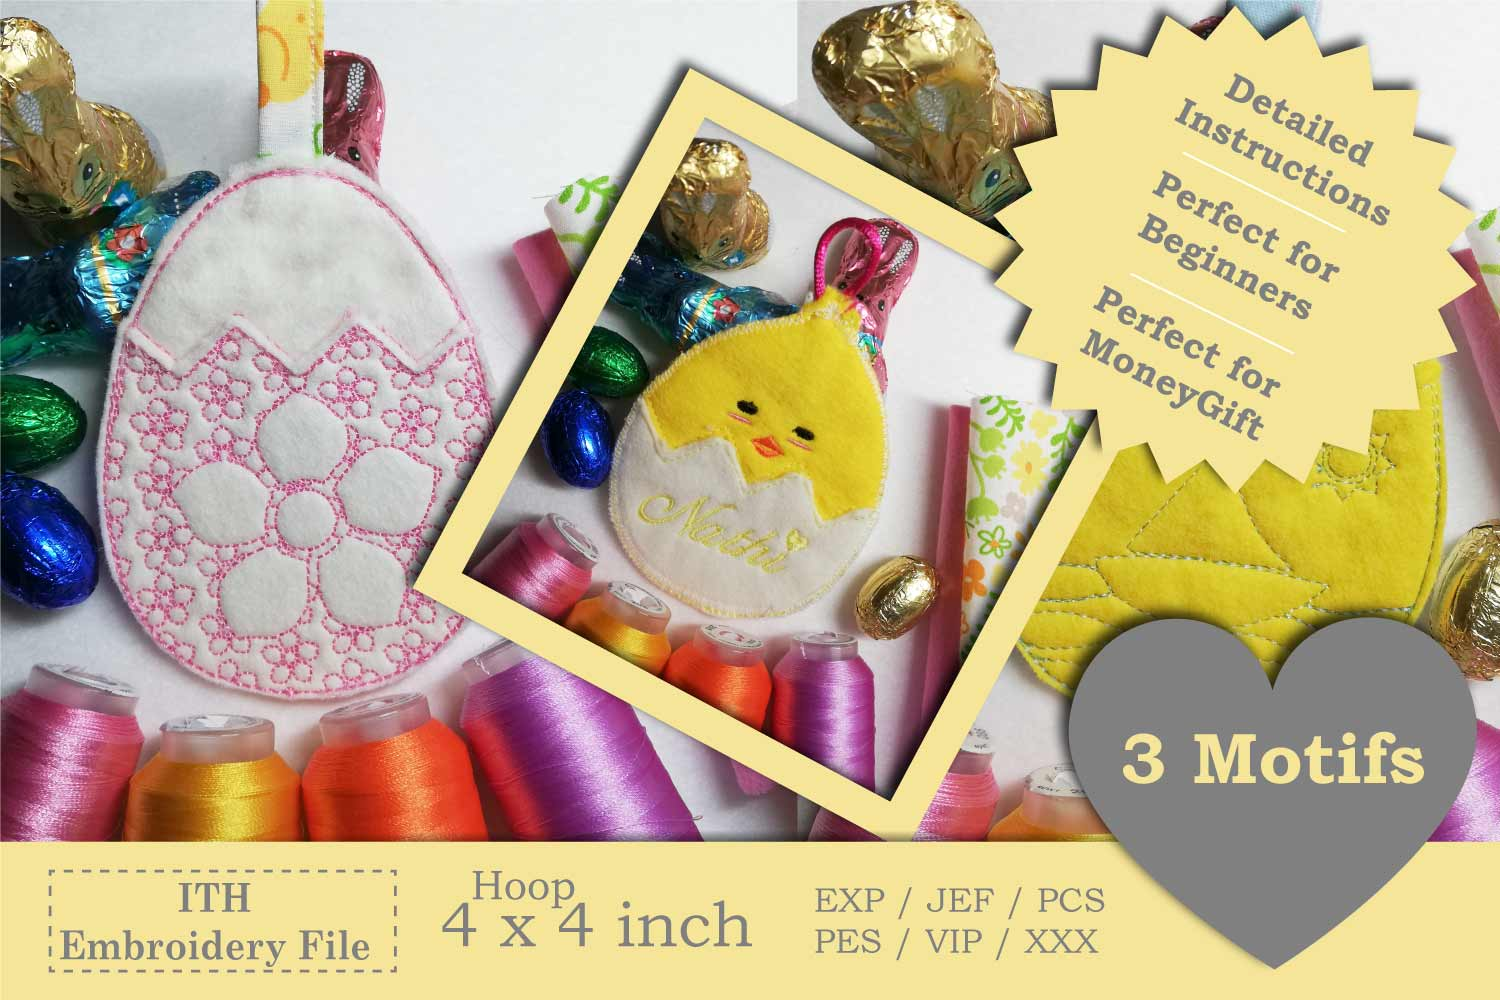 ITH Easter Bundle - Machine Embroidery Files - 10 Projects example image 14